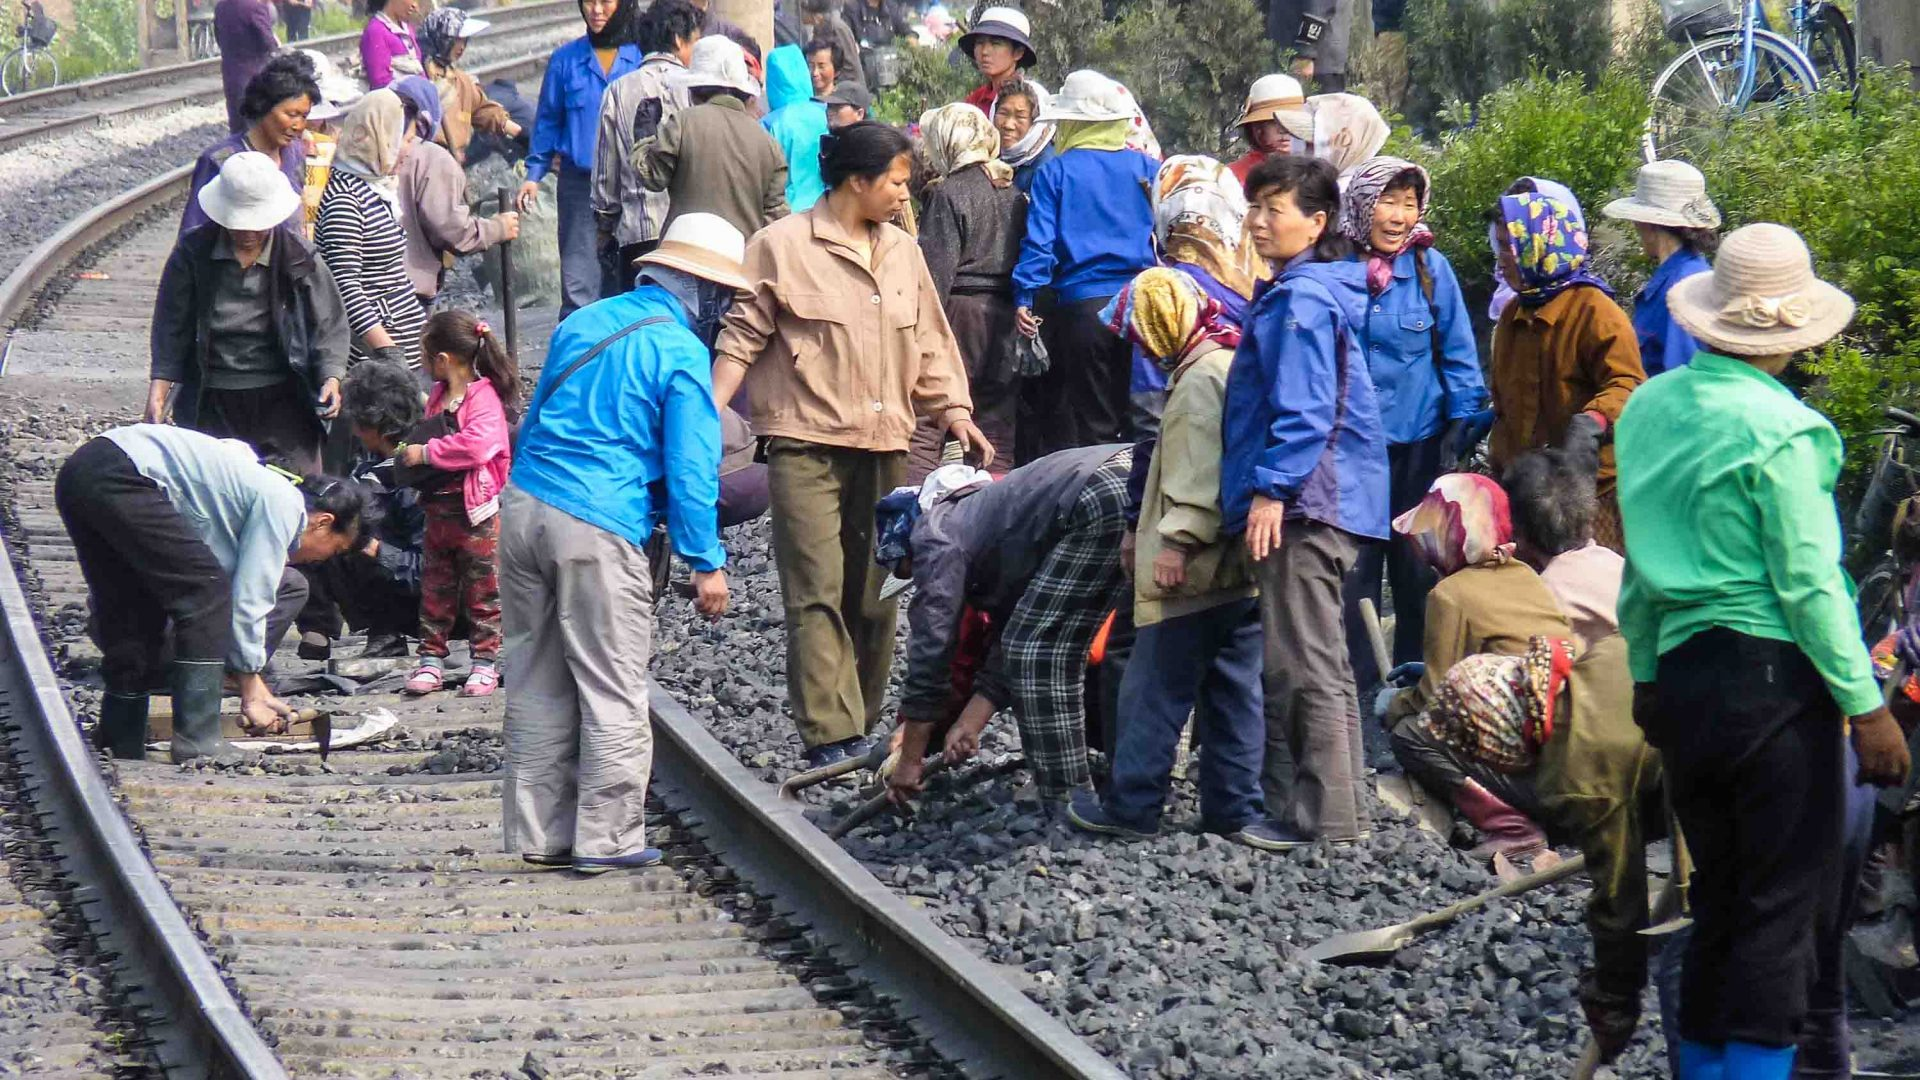 Train workers work by hand on the rail lines.